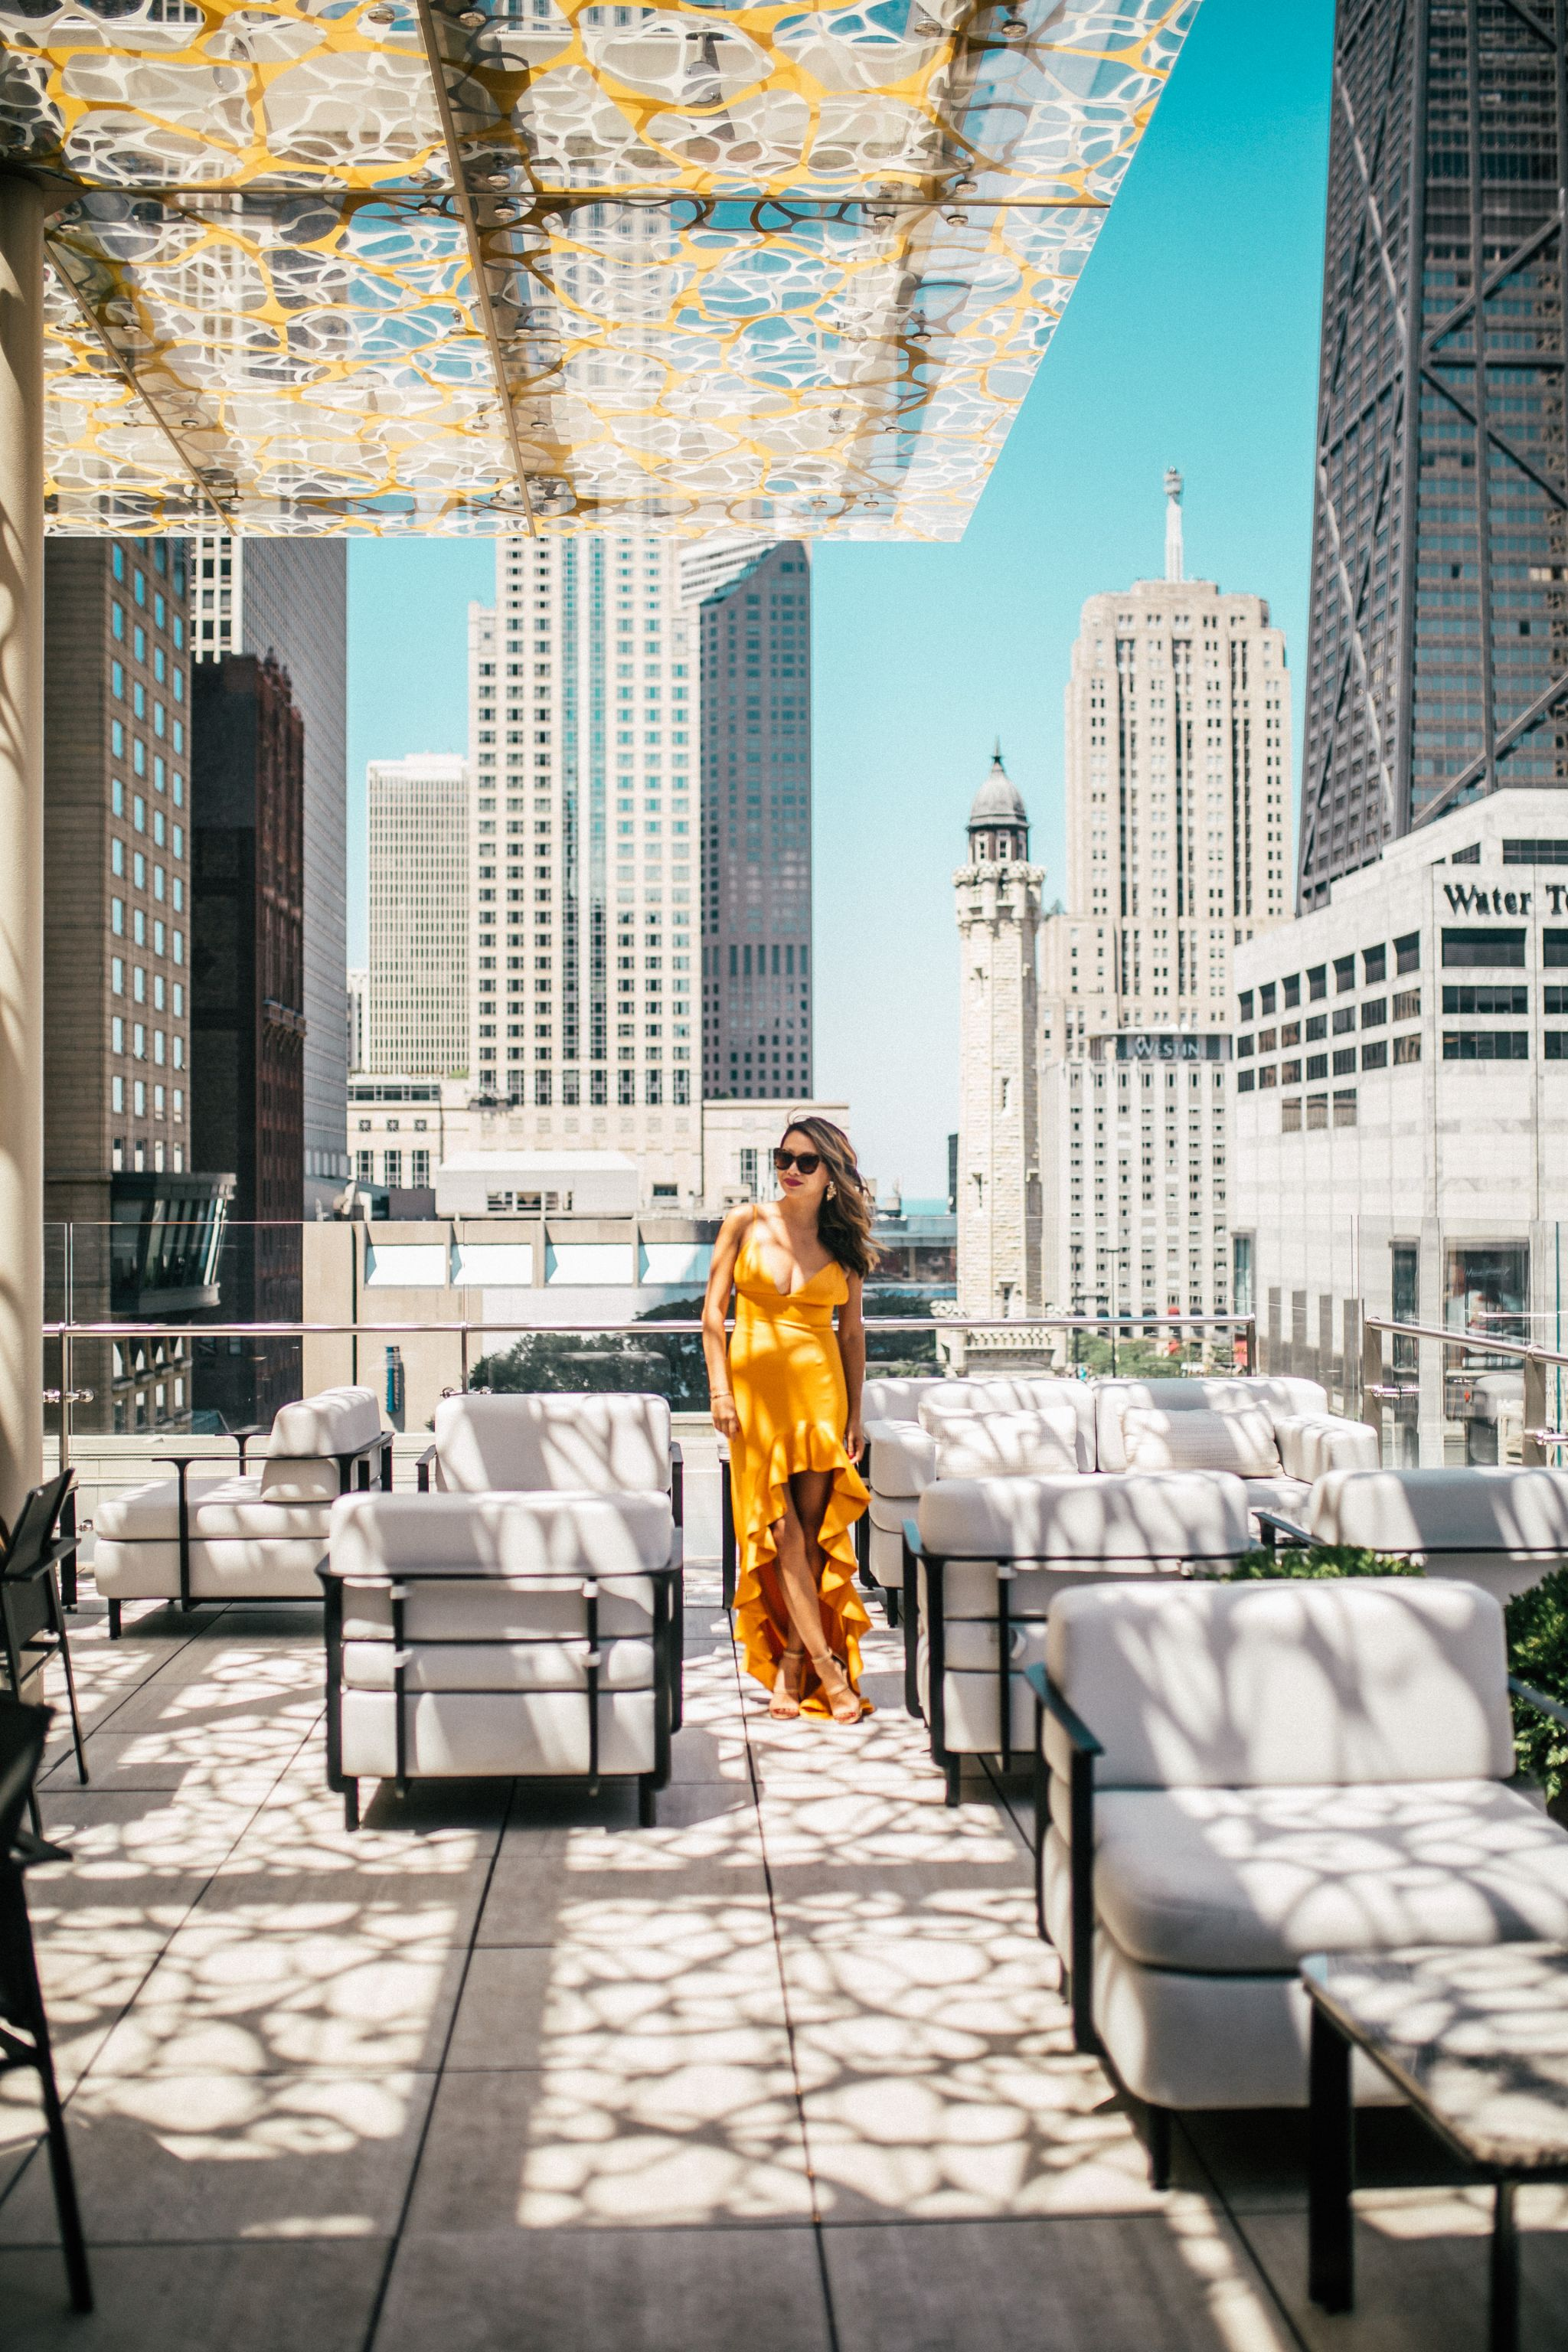 Best Chicago Rooftop Bars - Red Soles and Red Wine